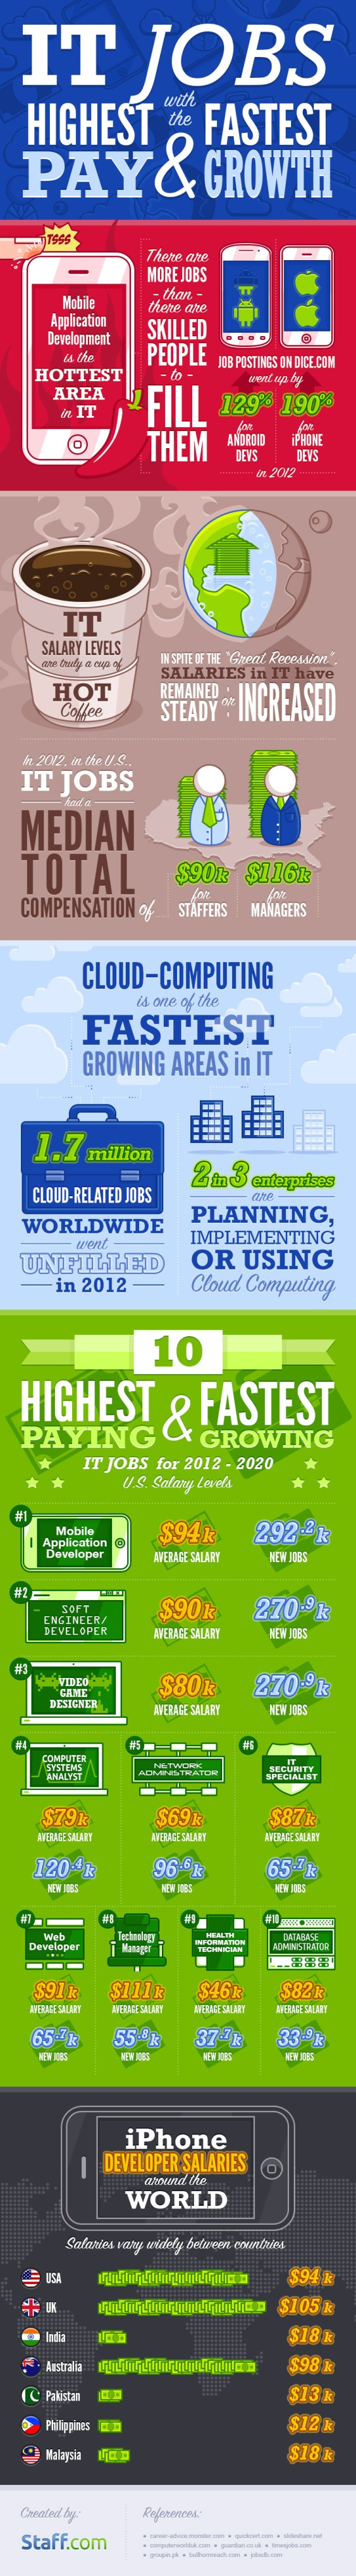 IT Jobs Offer Fastest Growth and Highest Pay